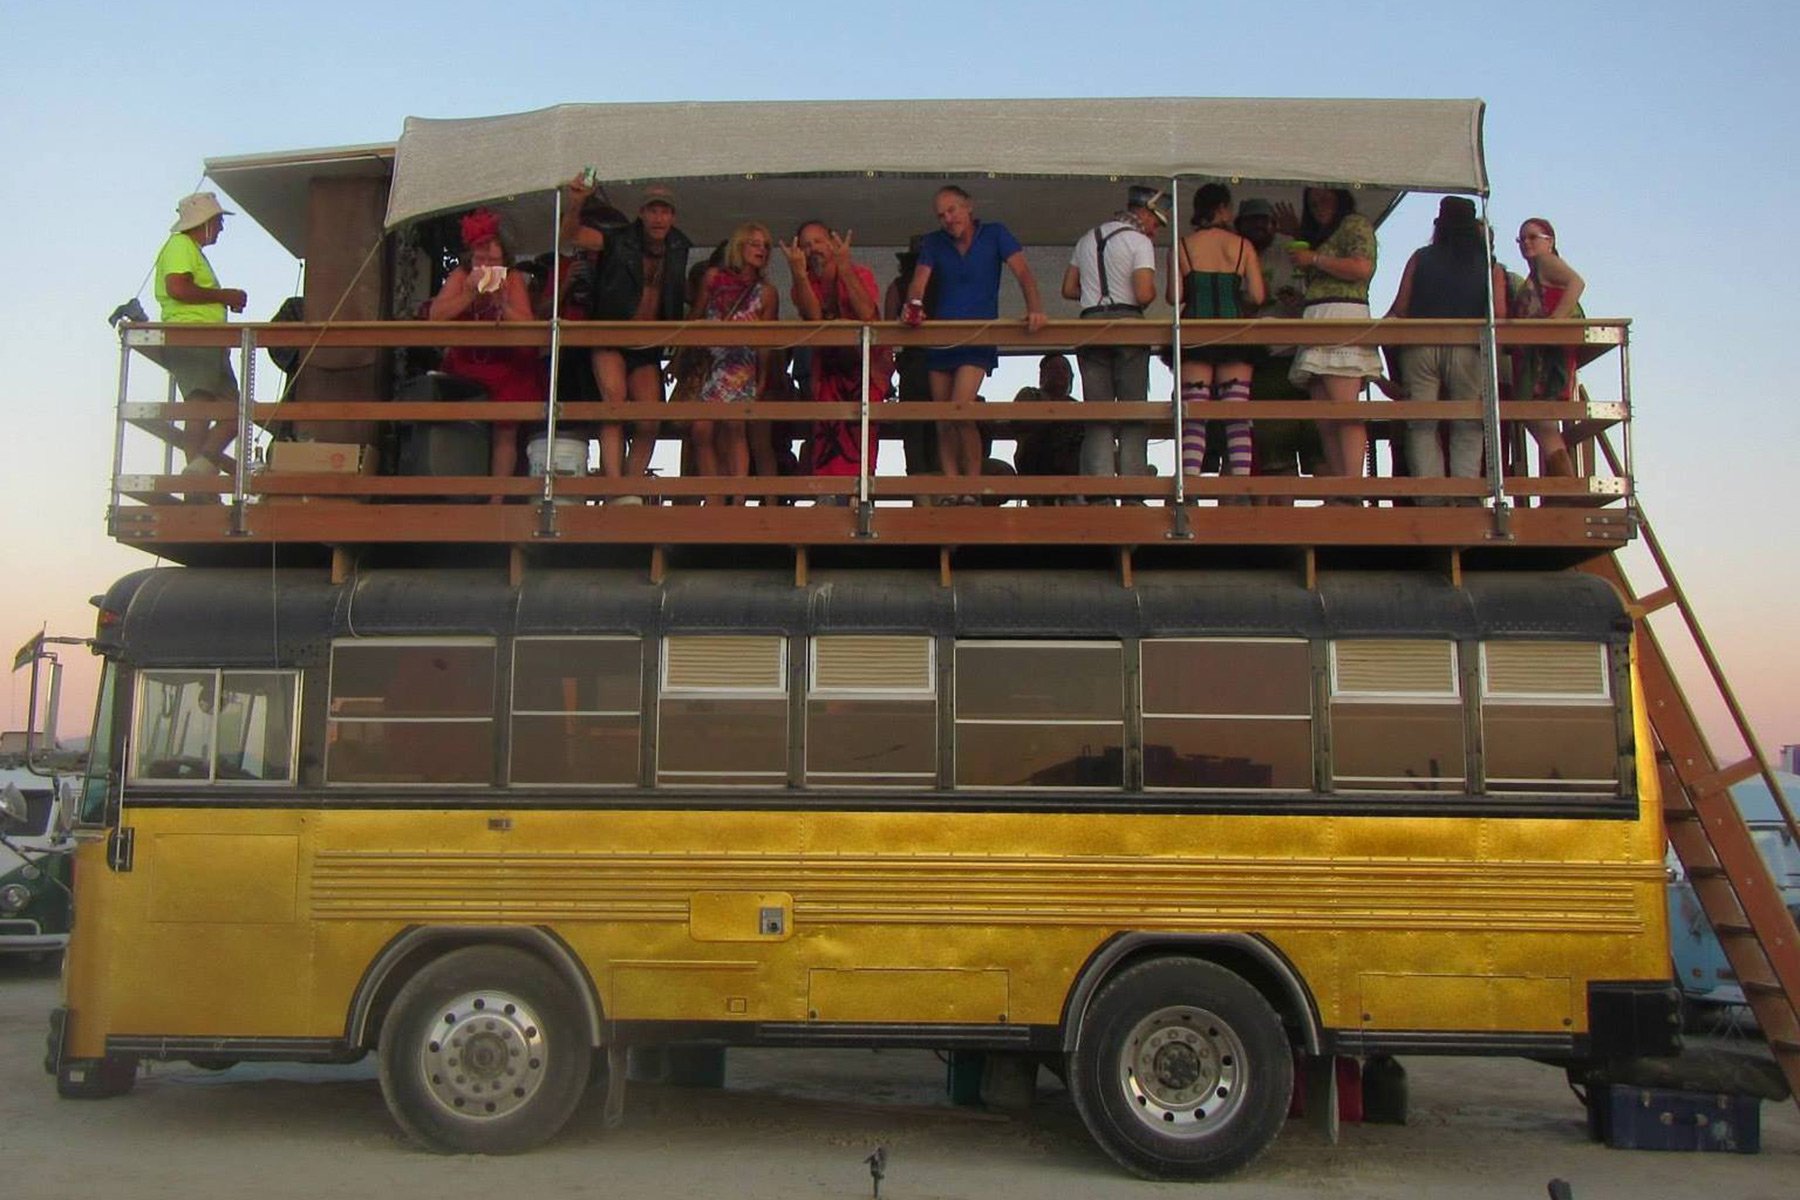 '93 Bluebird School Bus converted to a camper for Burning Man